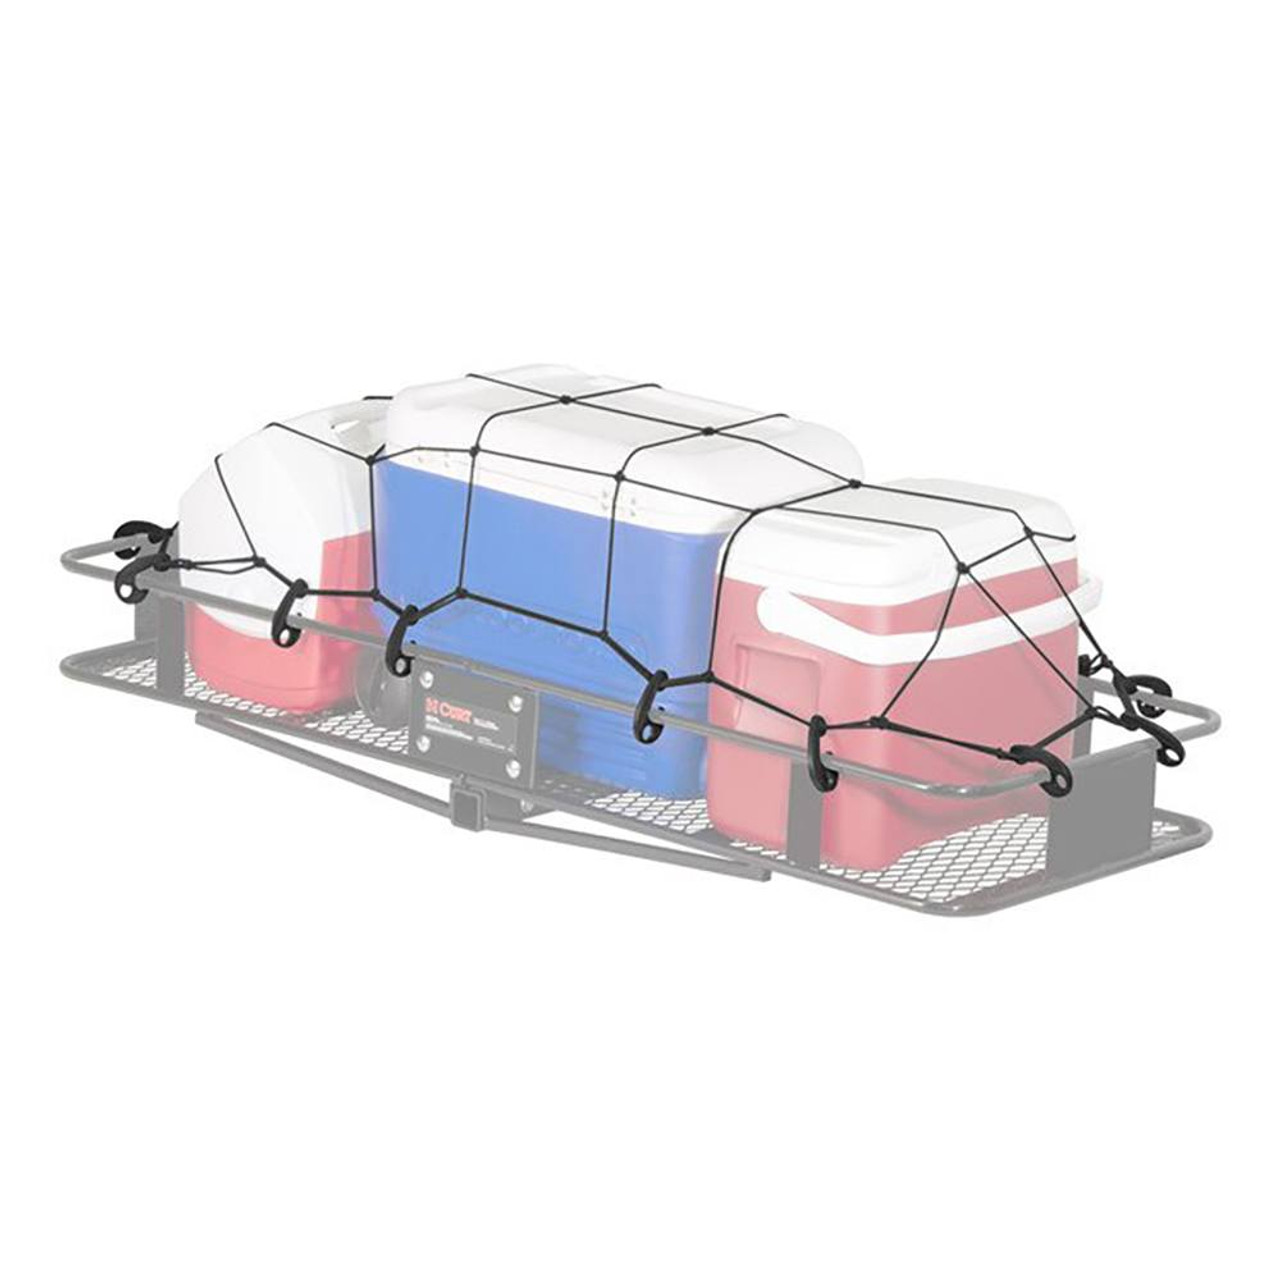 "Cargo Carrier Cargo Net- Fits on 60"" Carriers-"